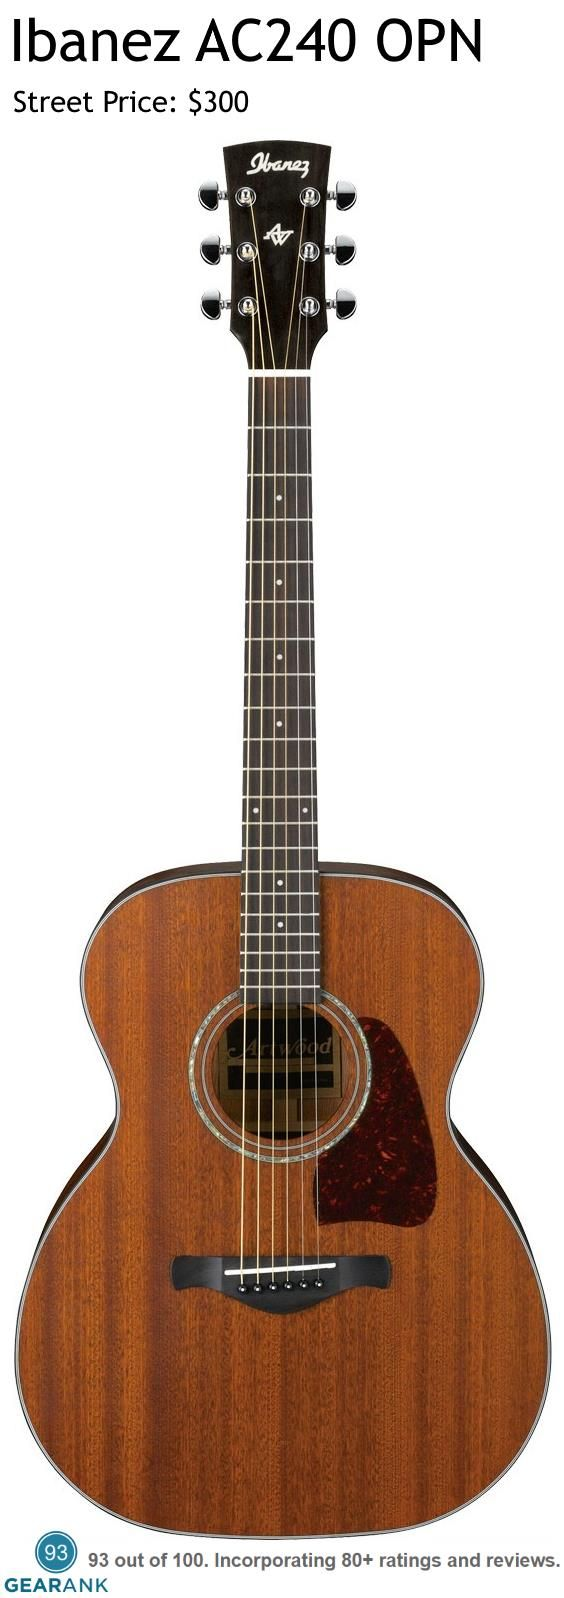 Ibanez AC240 OPN. This all Mahogany acoustic guitar is one of the highest rated acoustic guitars under $300.